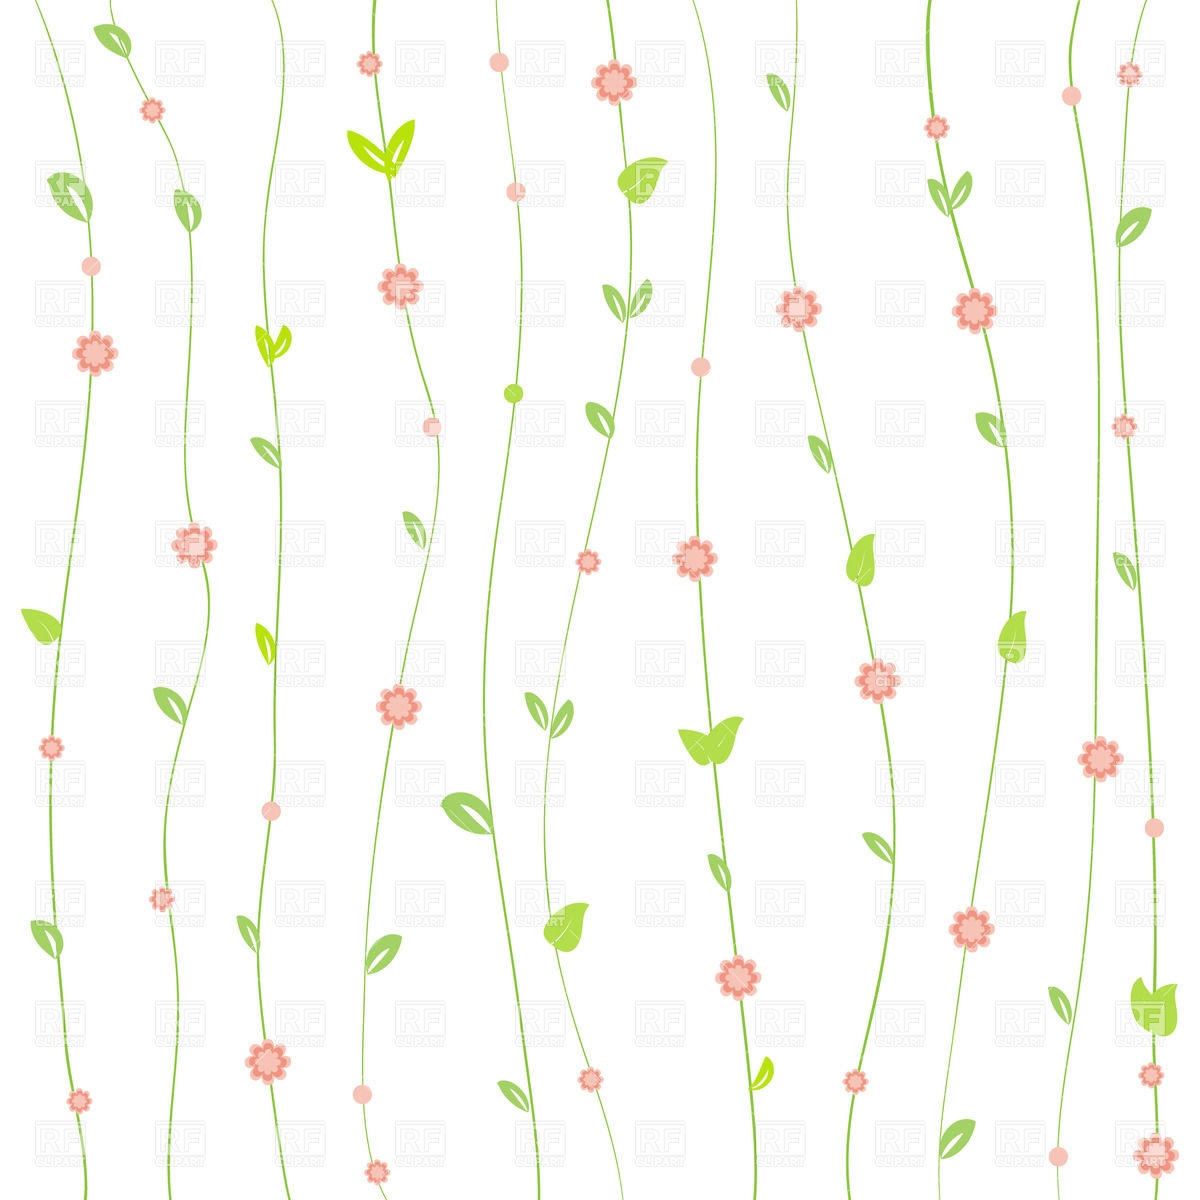 Flowers Clipart Background - Free Clipart Backgrounds